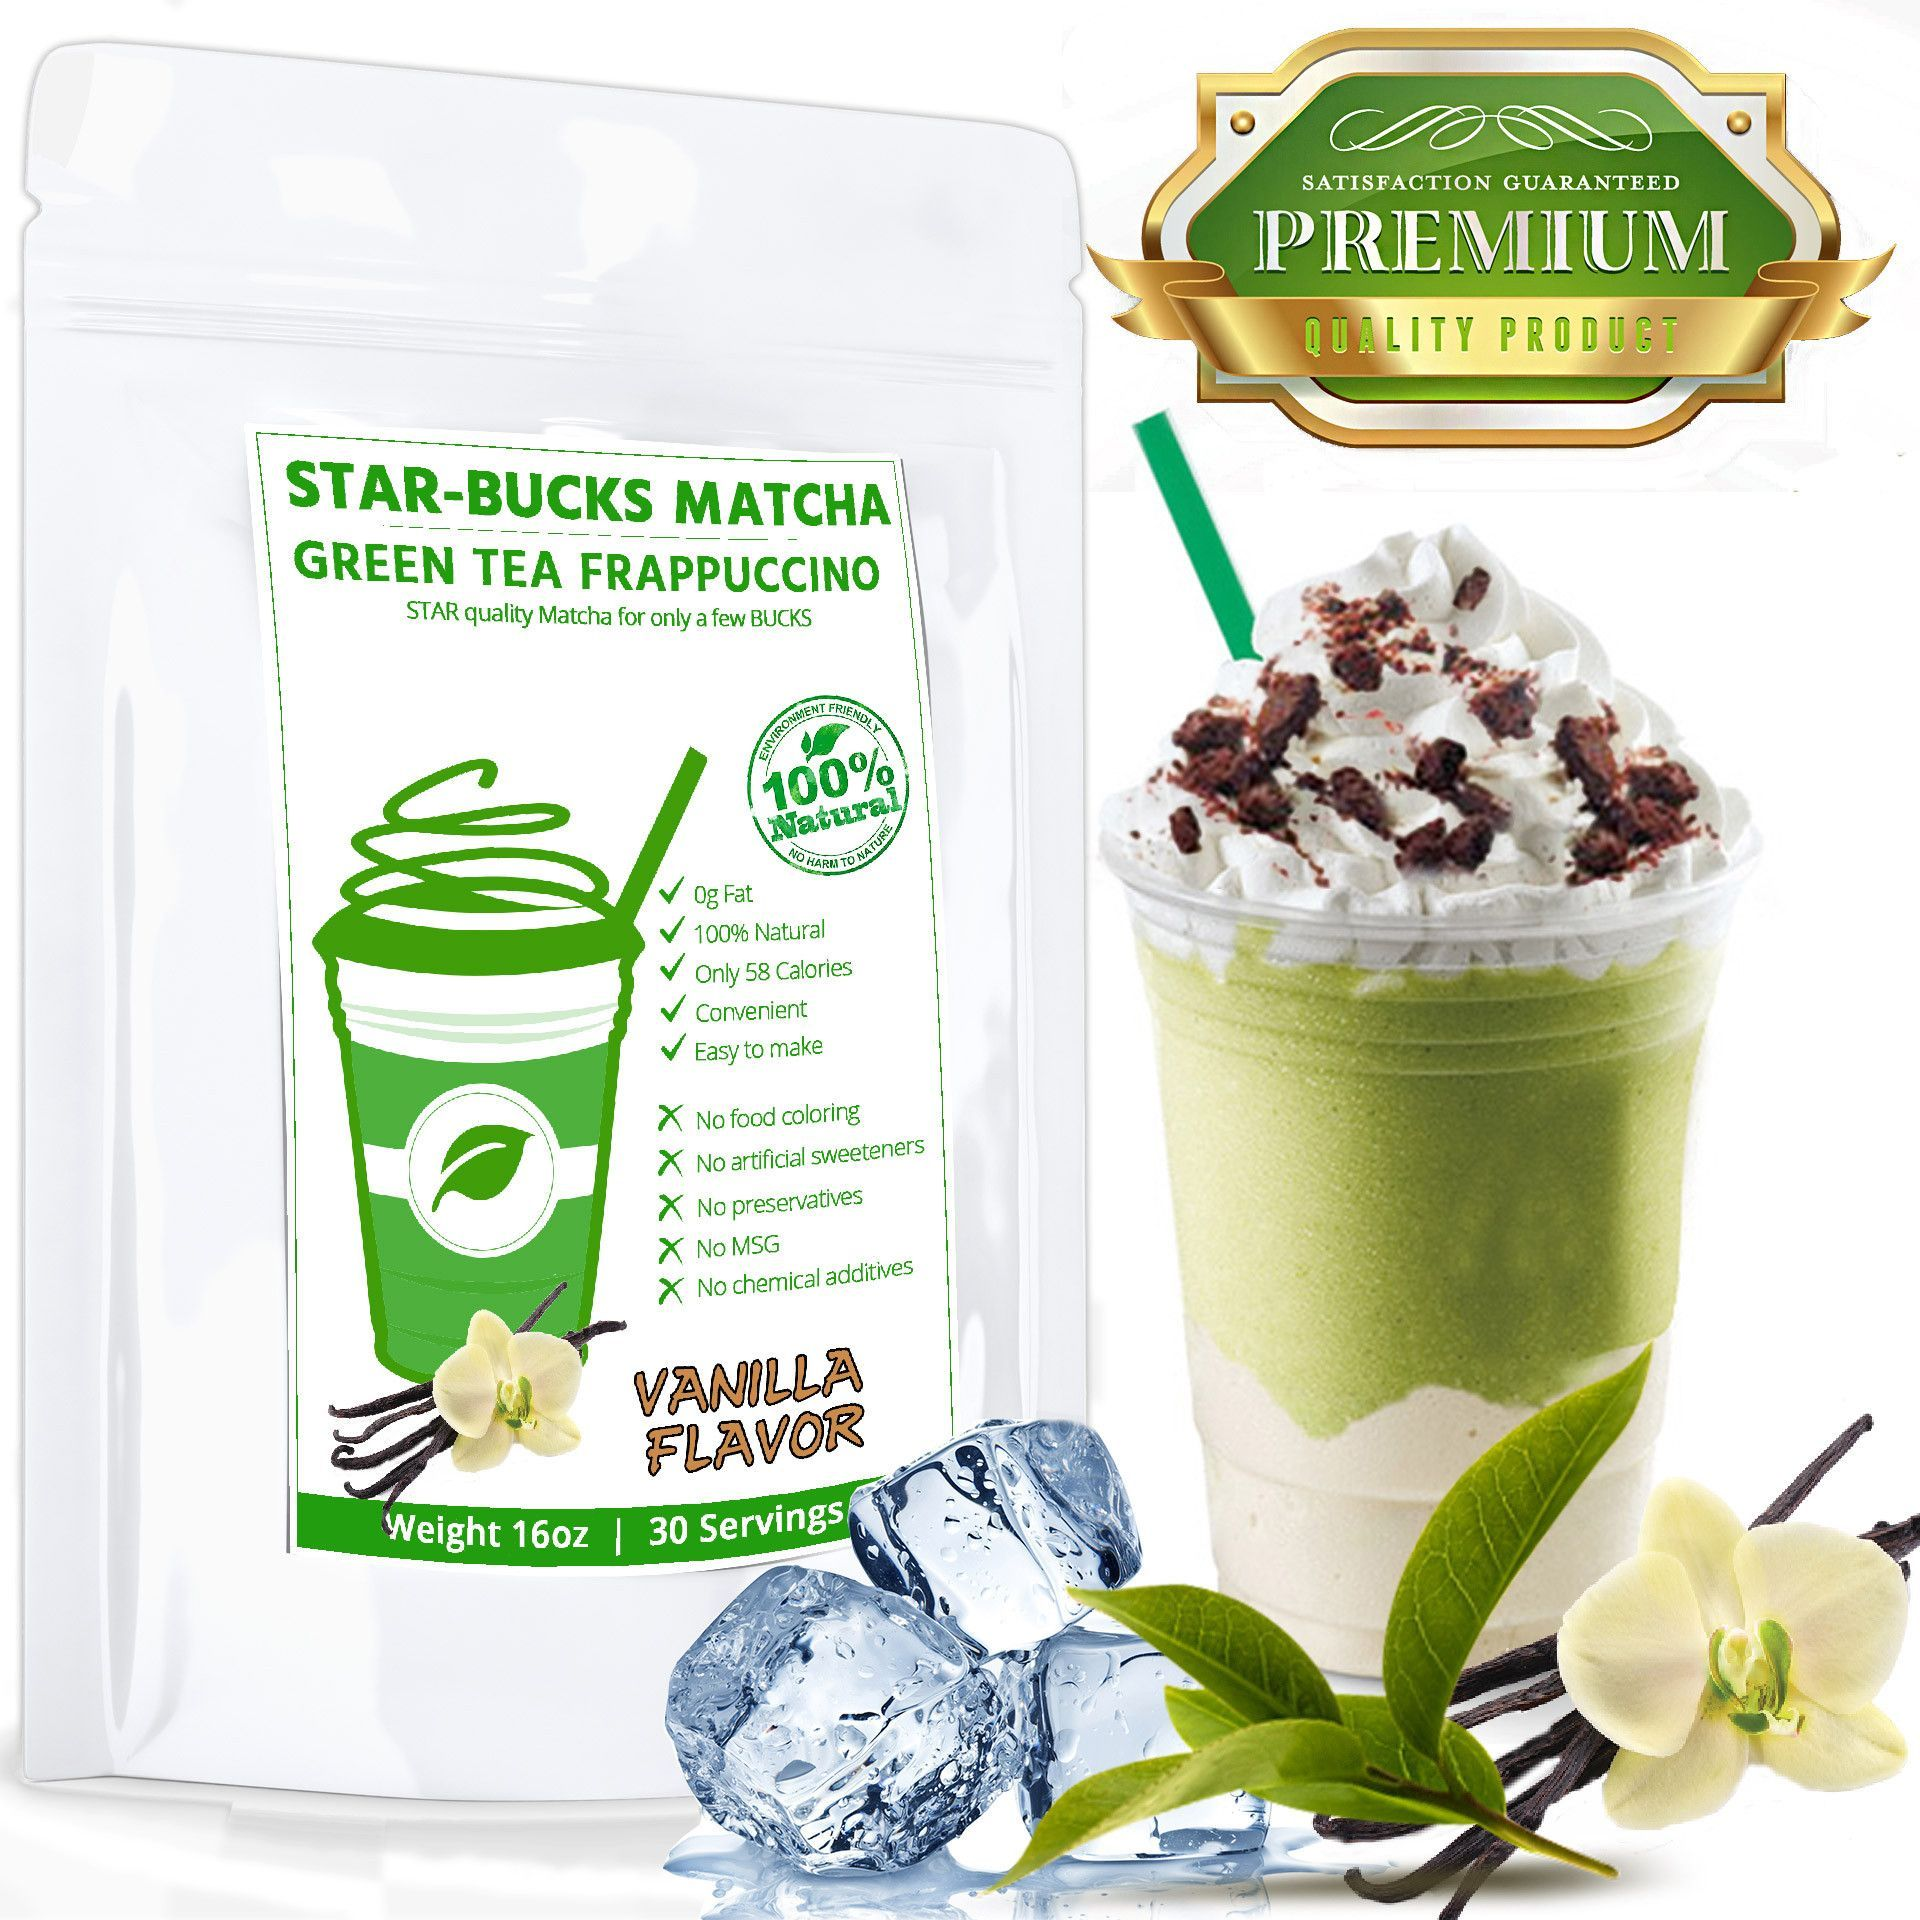 Sweet Japanese Matcha With Vanilla Flavor